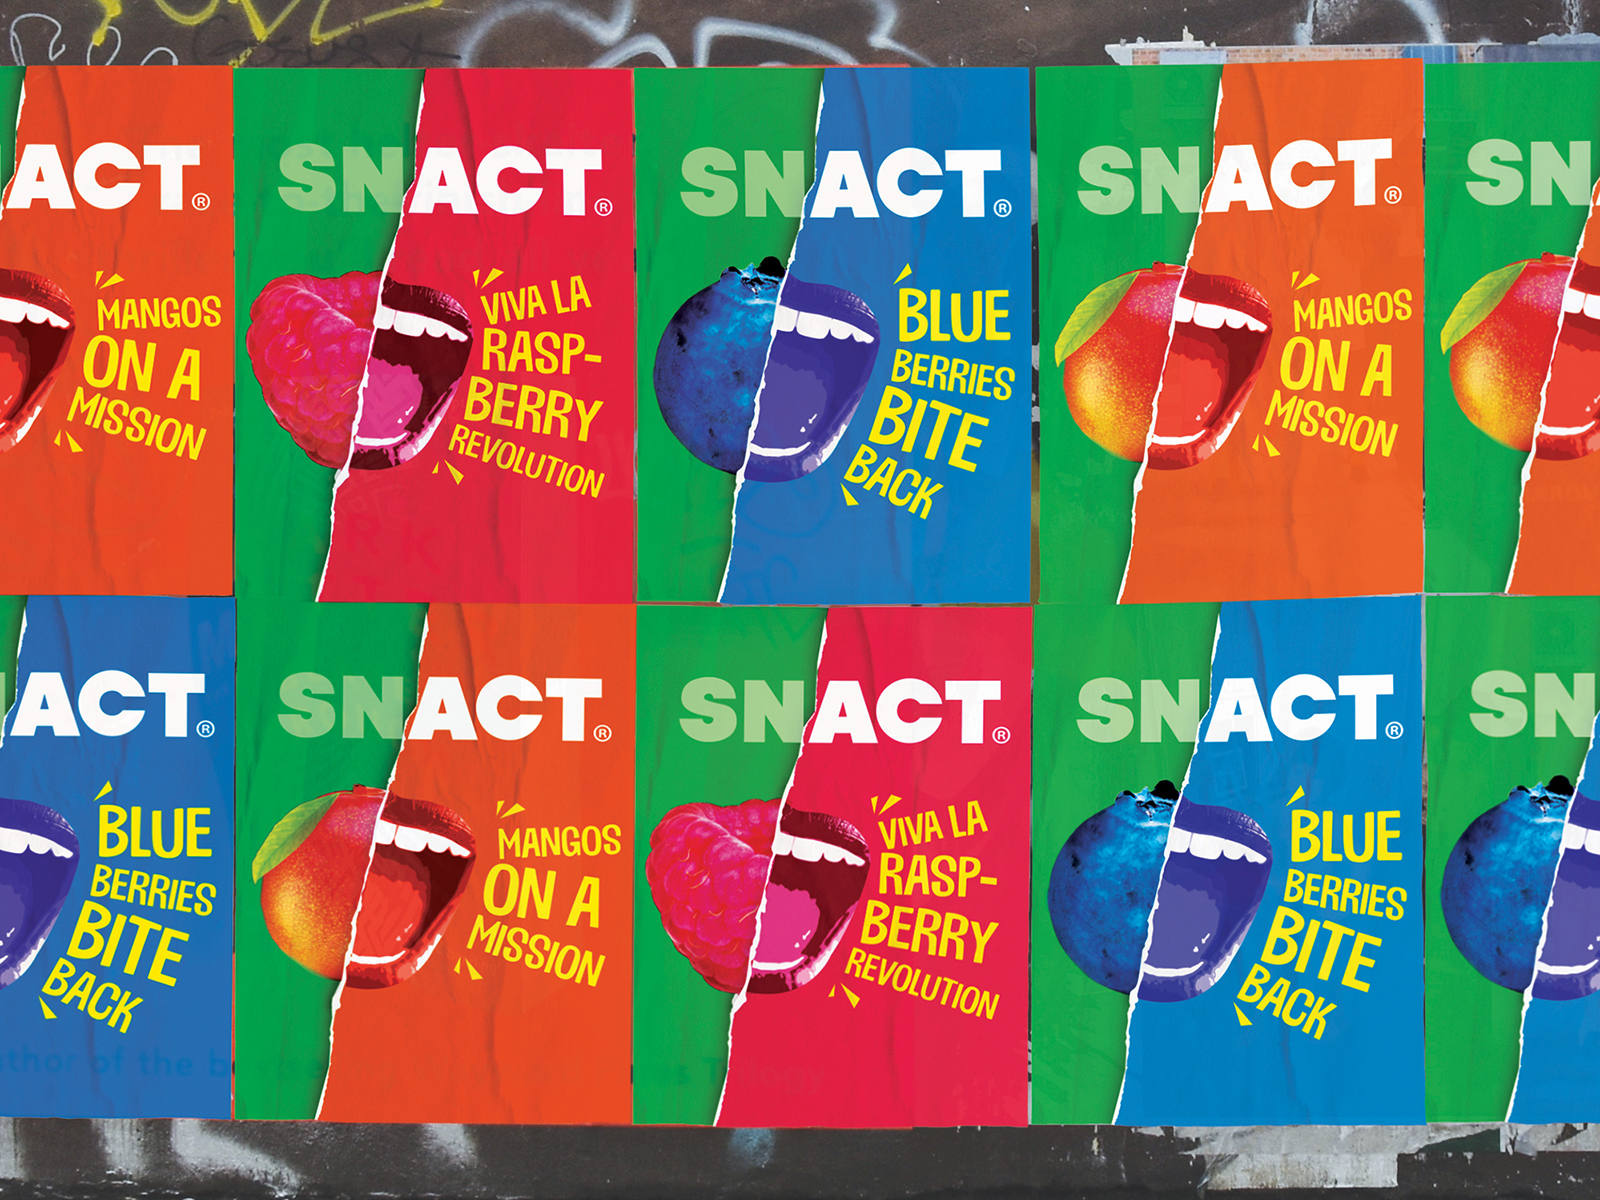 Snact Poster Wall Crop